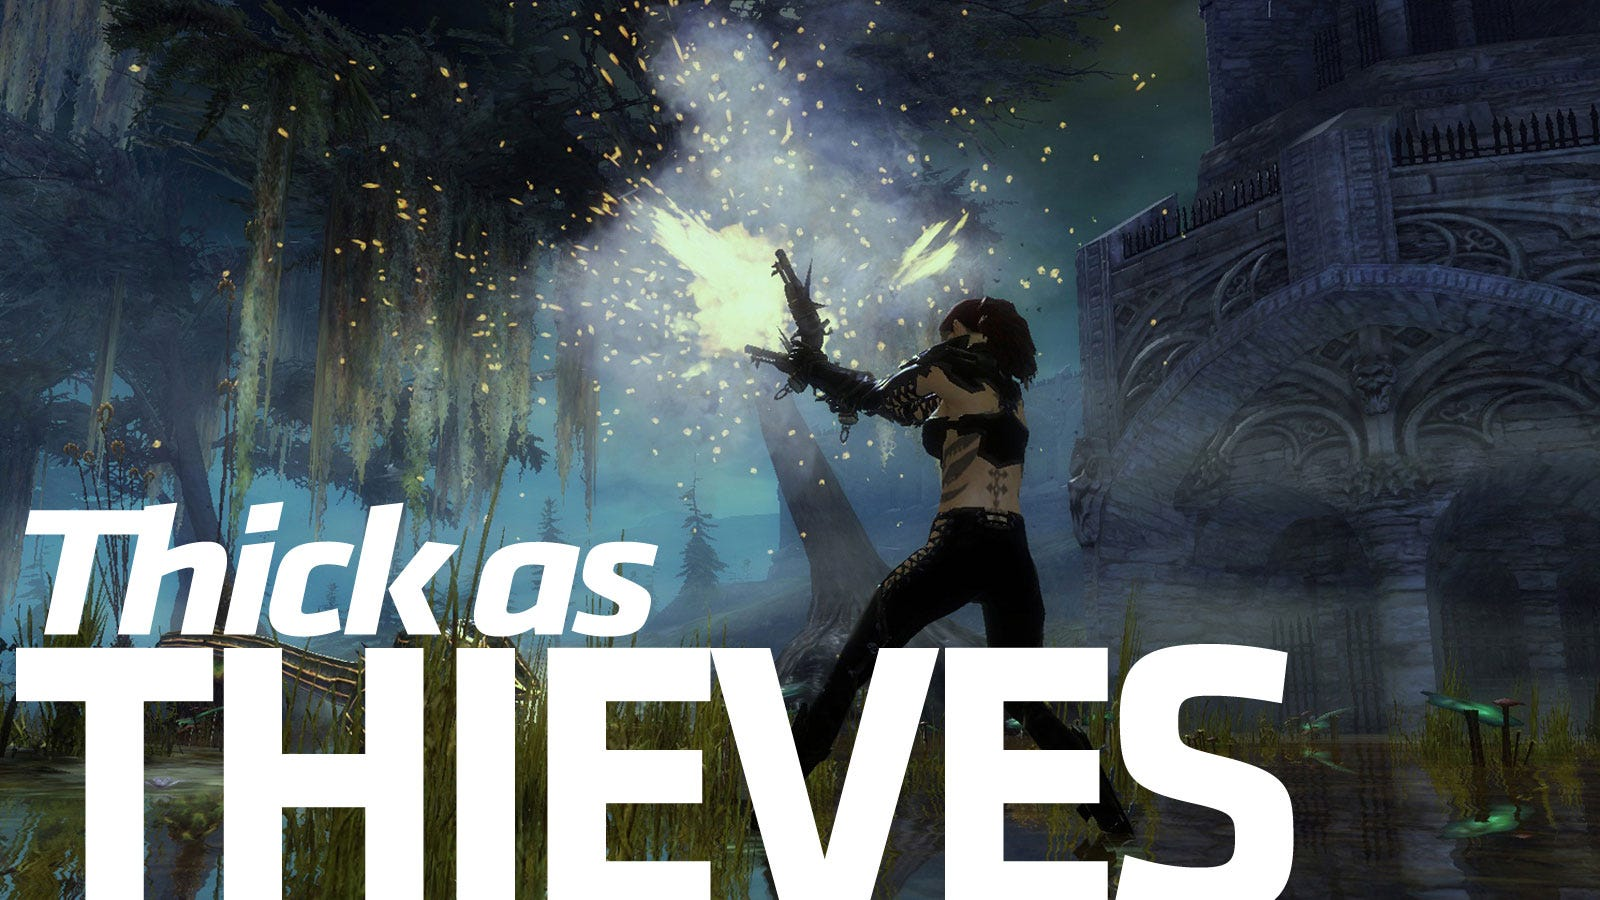 The Guild Wars 2 Thief Is A Rogue Like None Other